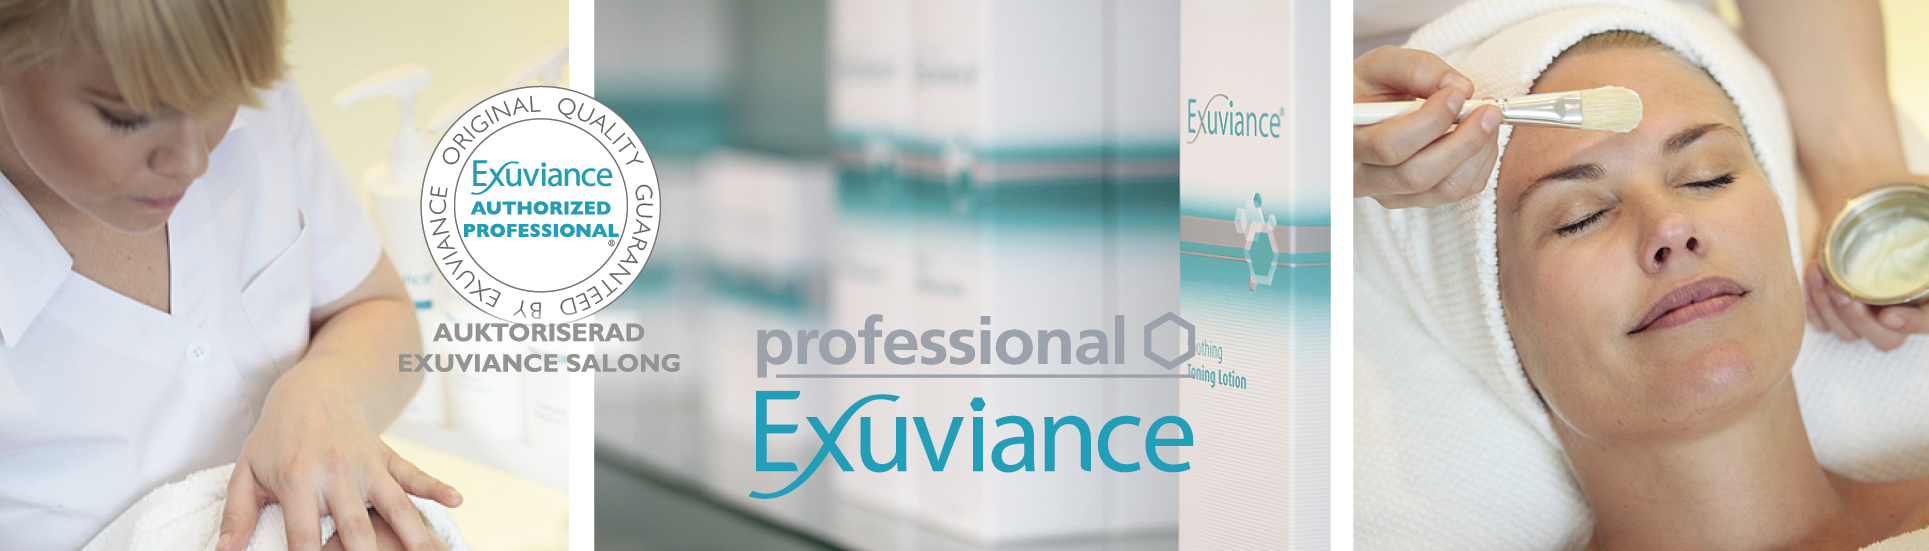 Excuviance professional